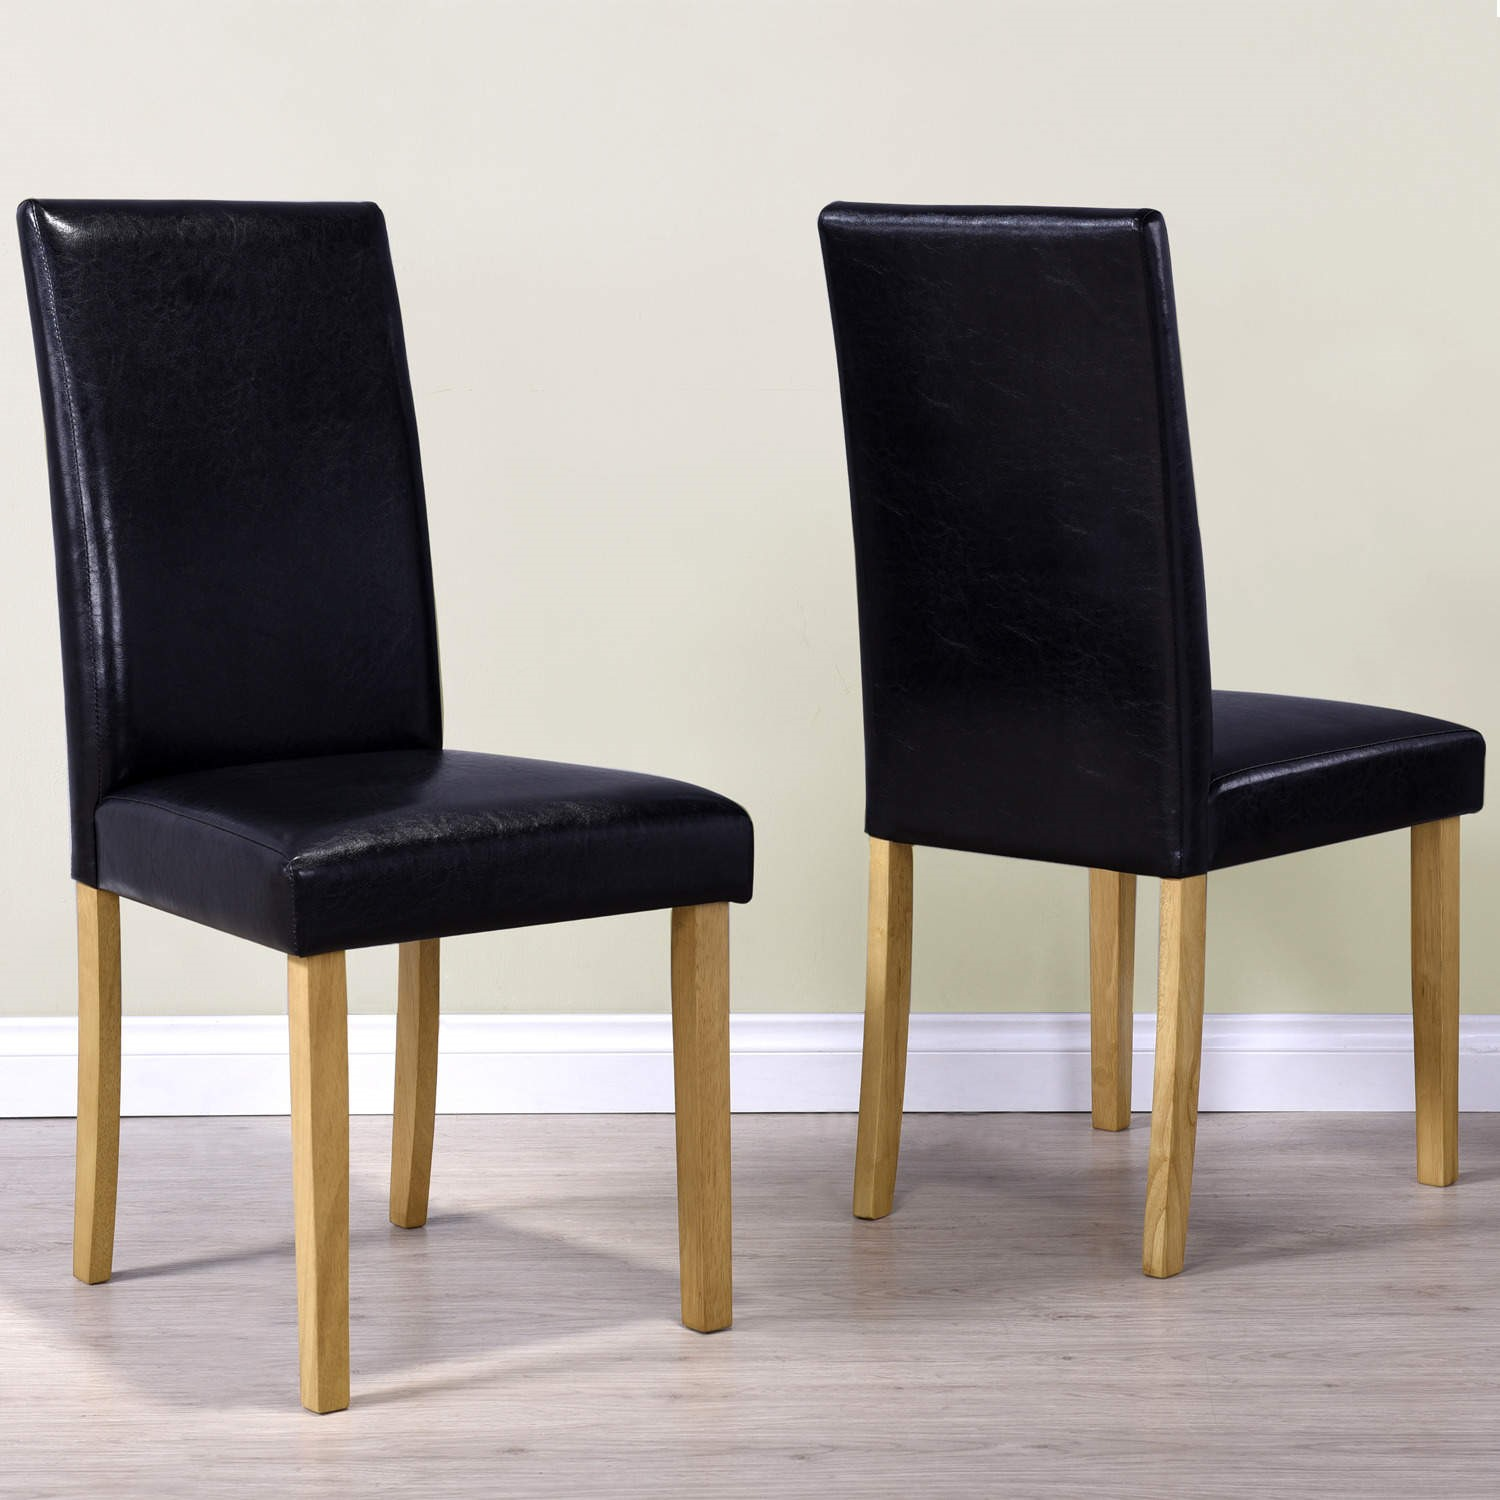 Black Pair of Faux Leather Dining Chairs with Wooden Legs ...